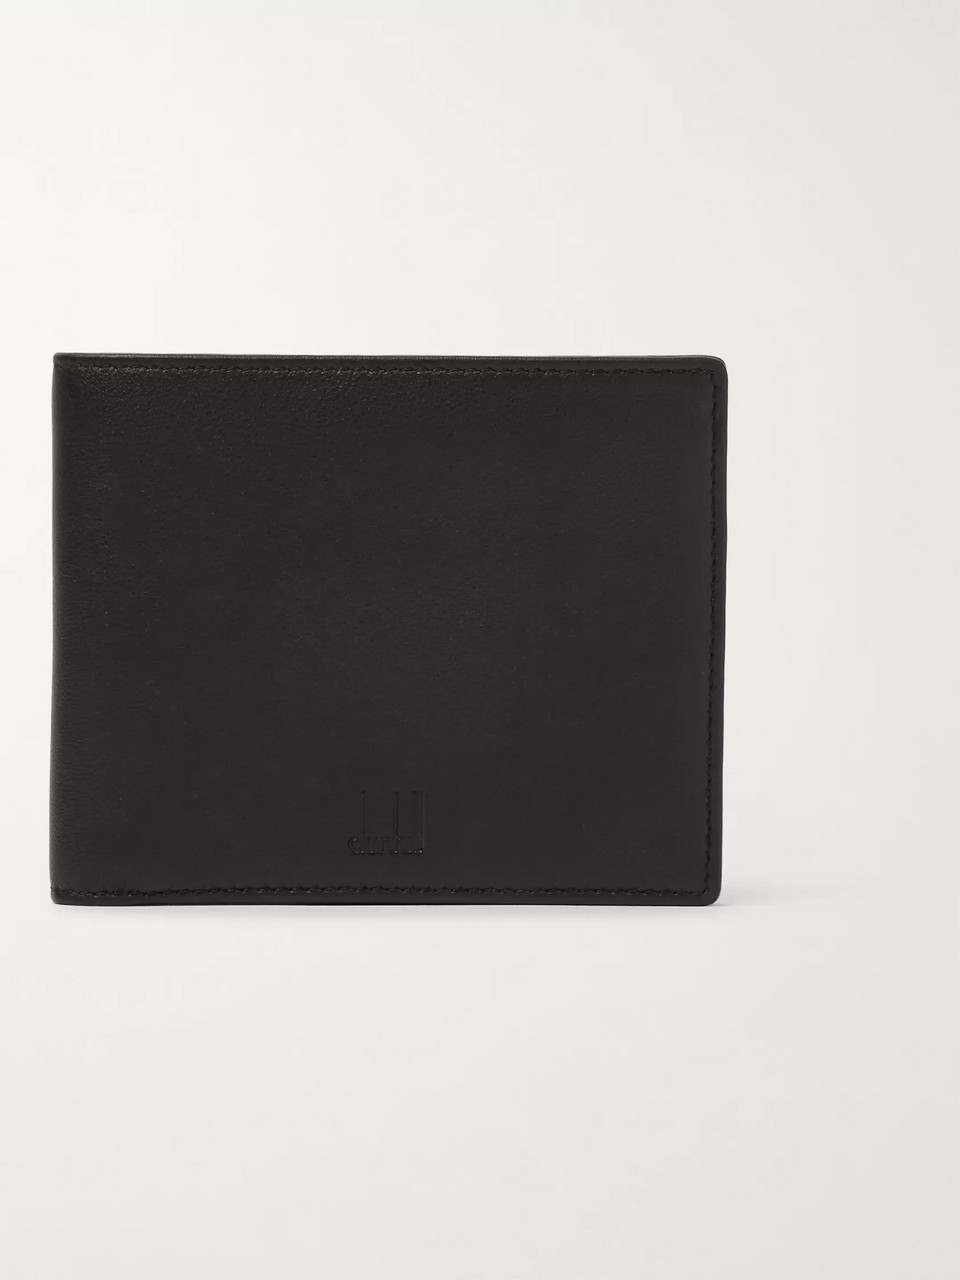 Dunhill Hampstead Leather Billfold Wallet